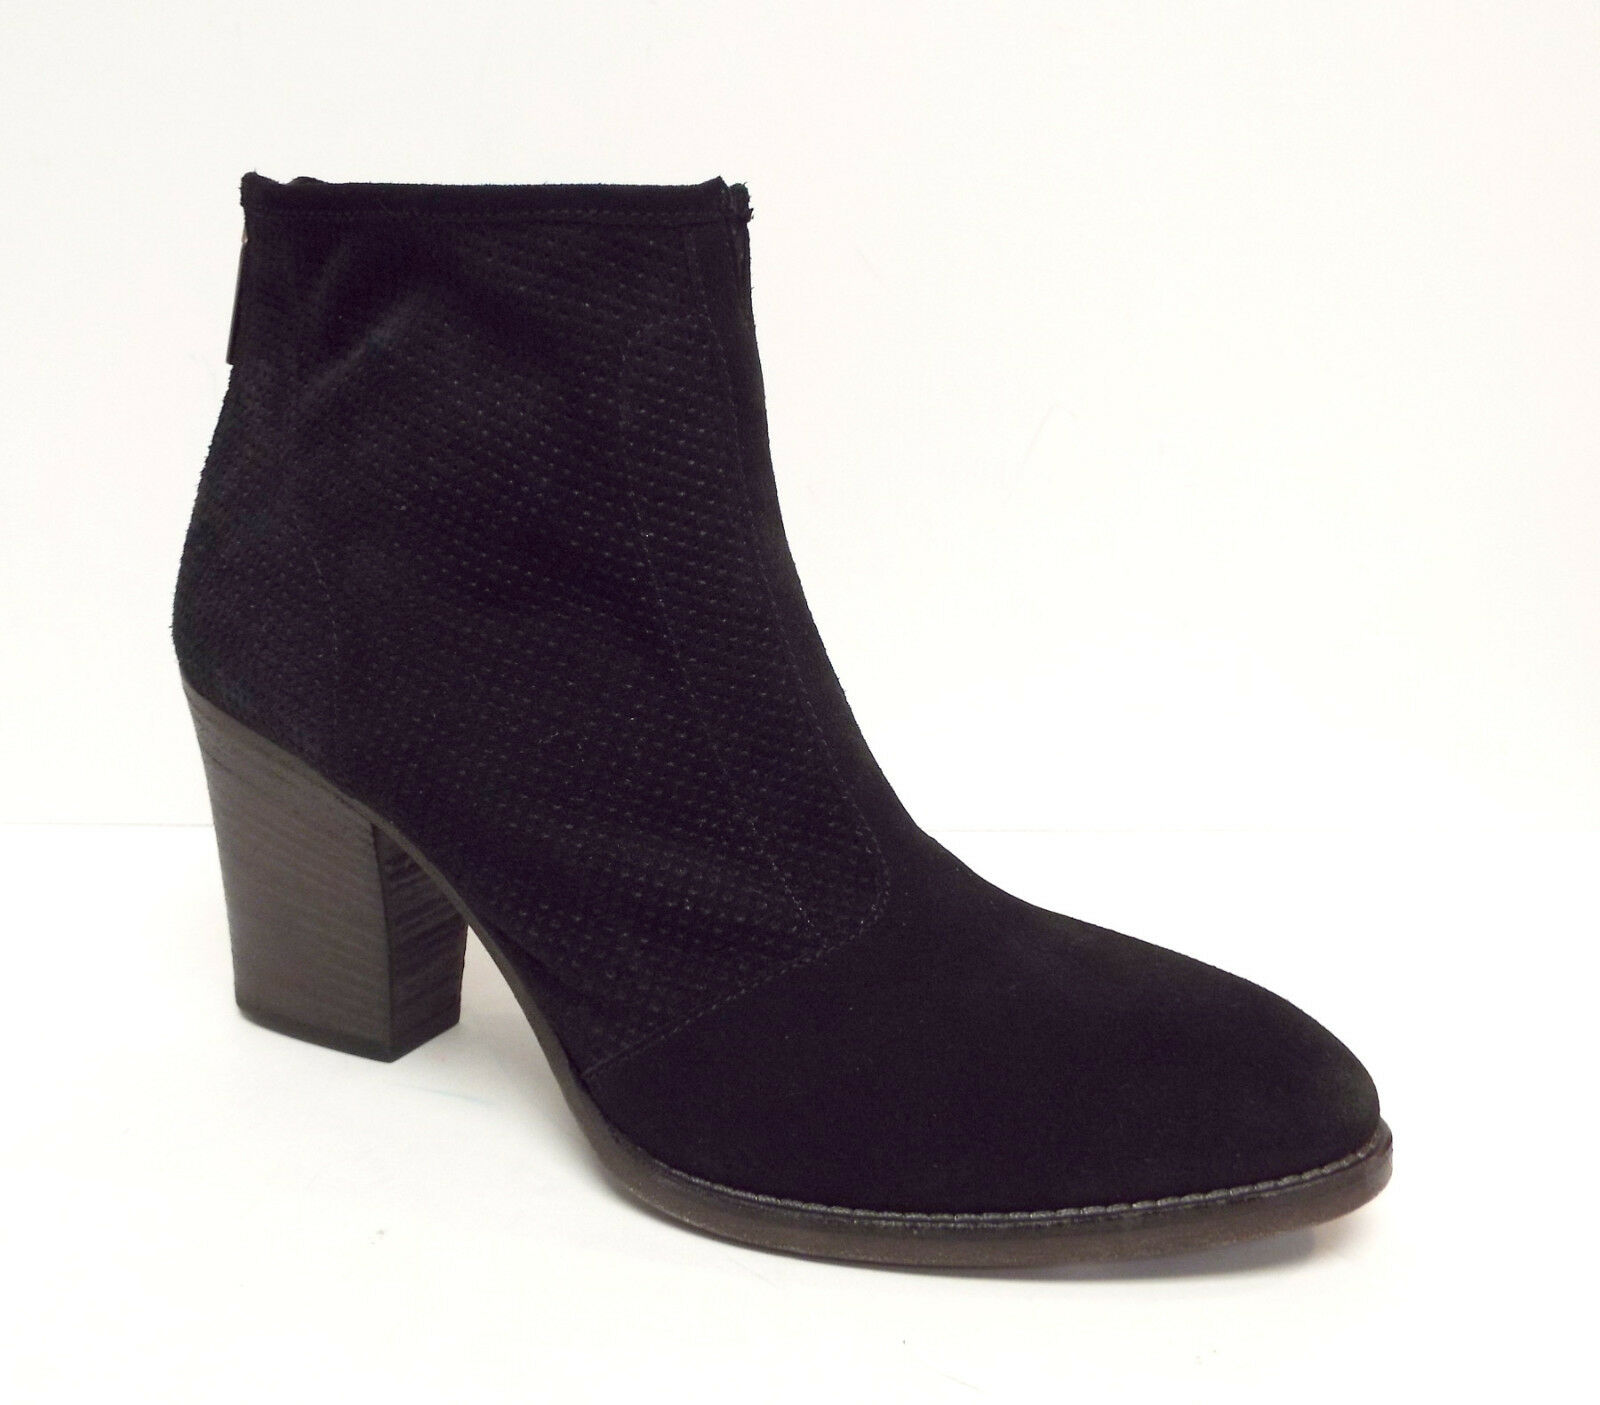 New AQUATALIA Size 10 FIA Black Perforated Suede Weatherproof Ankle Boots